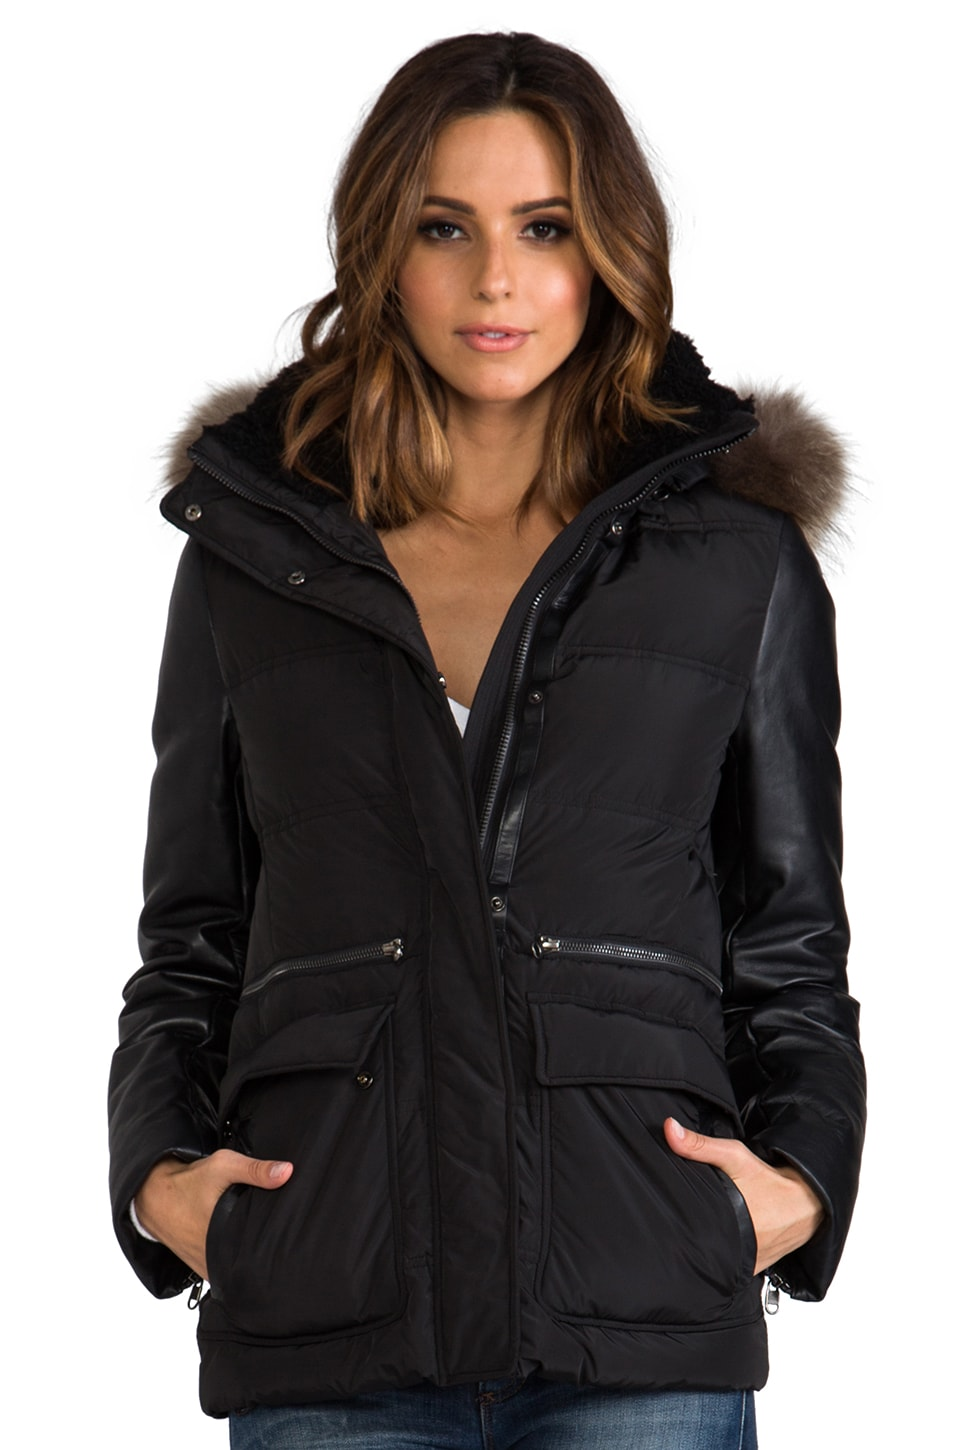 Mackage Alysha Peach Satin Down Jacket in Black